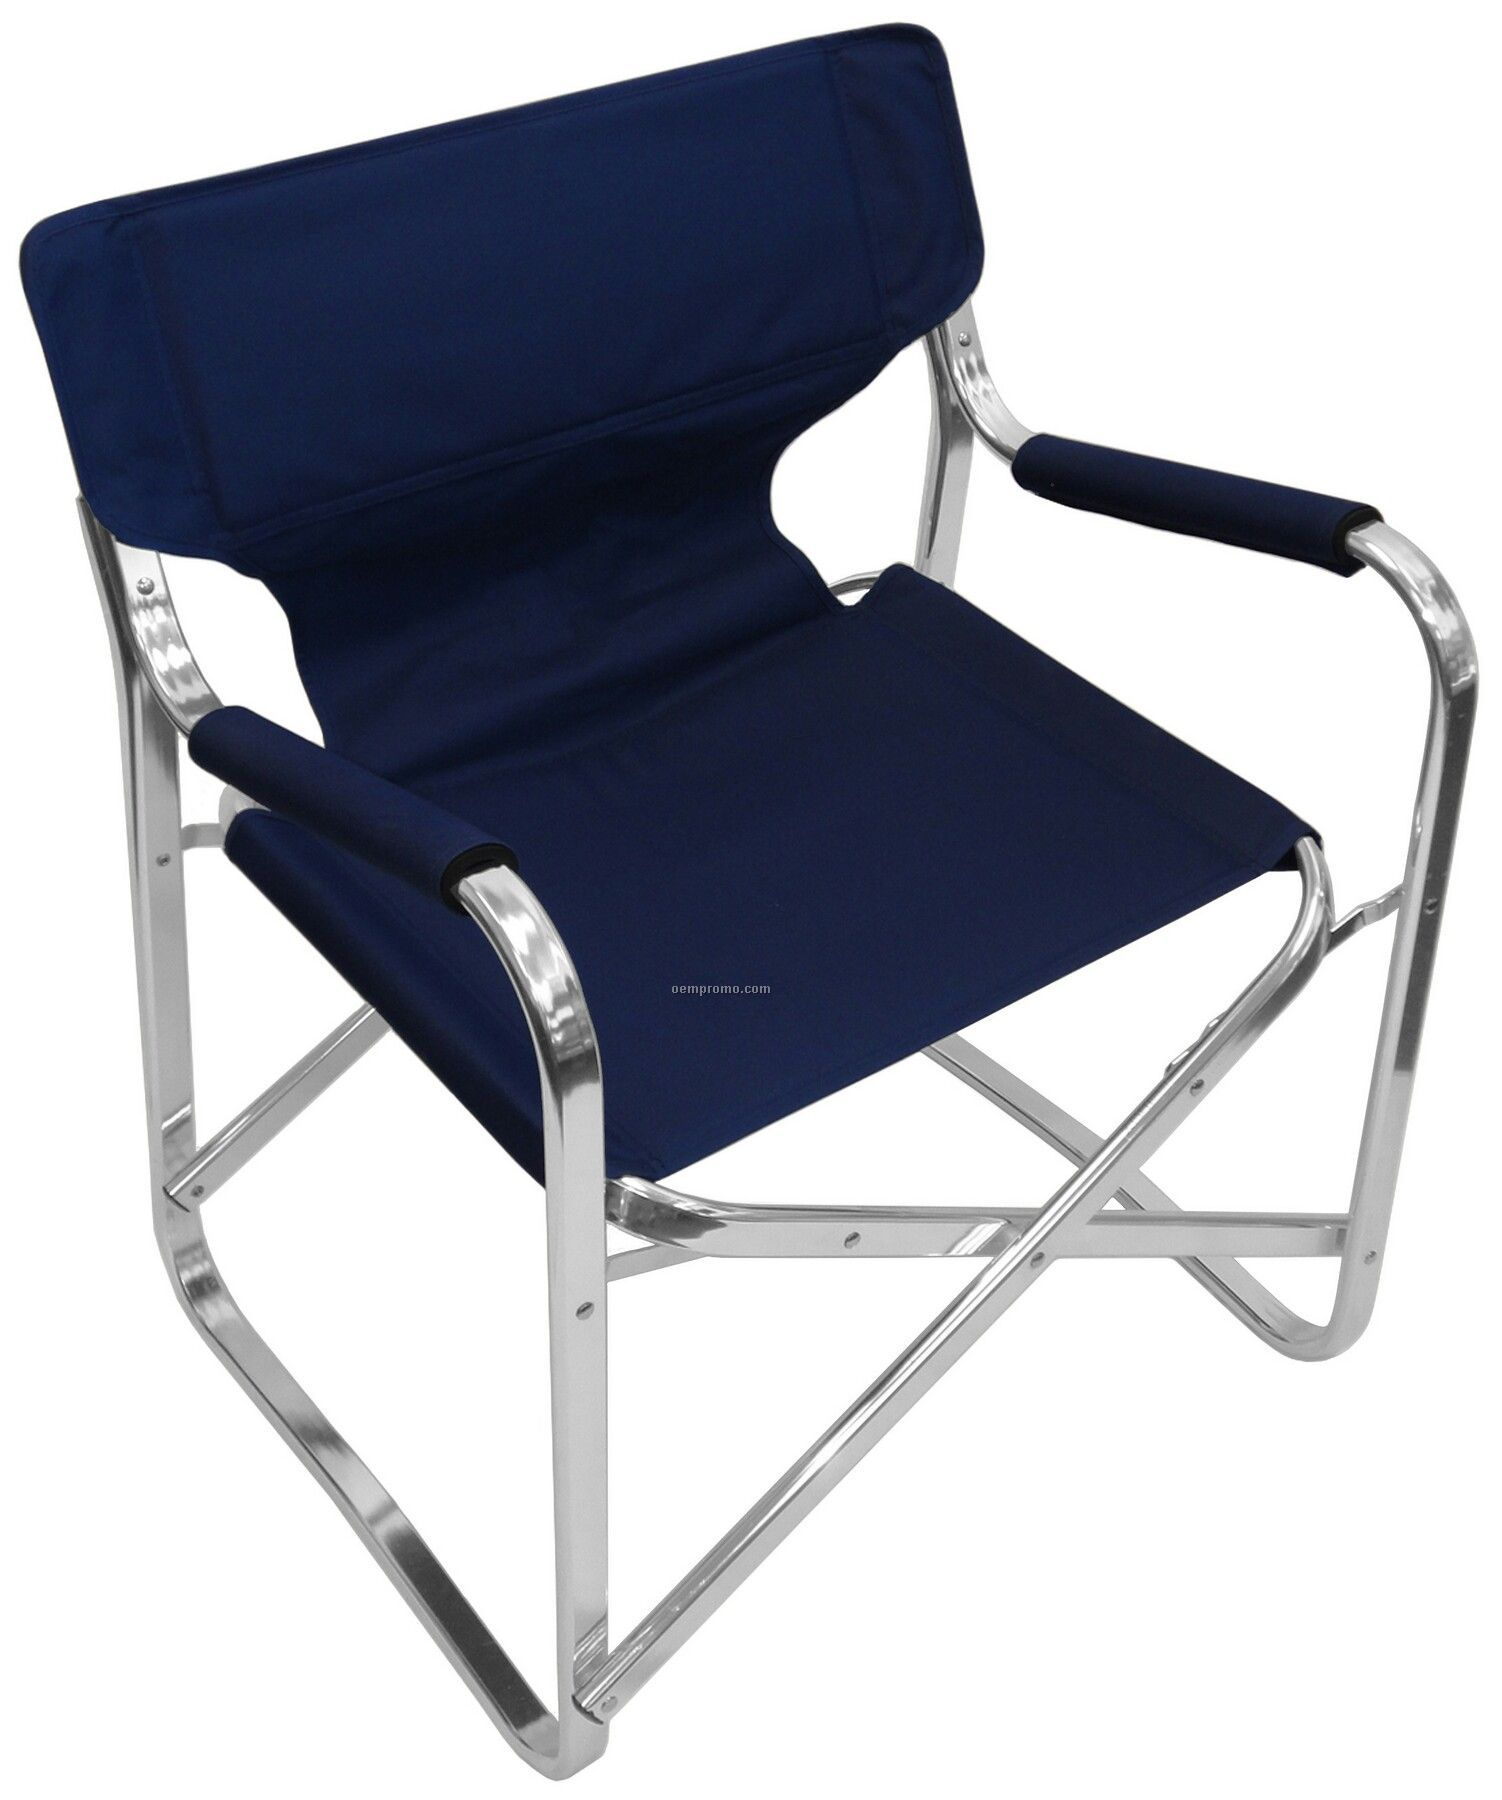 aluminum directors chair kids round chairs china wholesale page 31